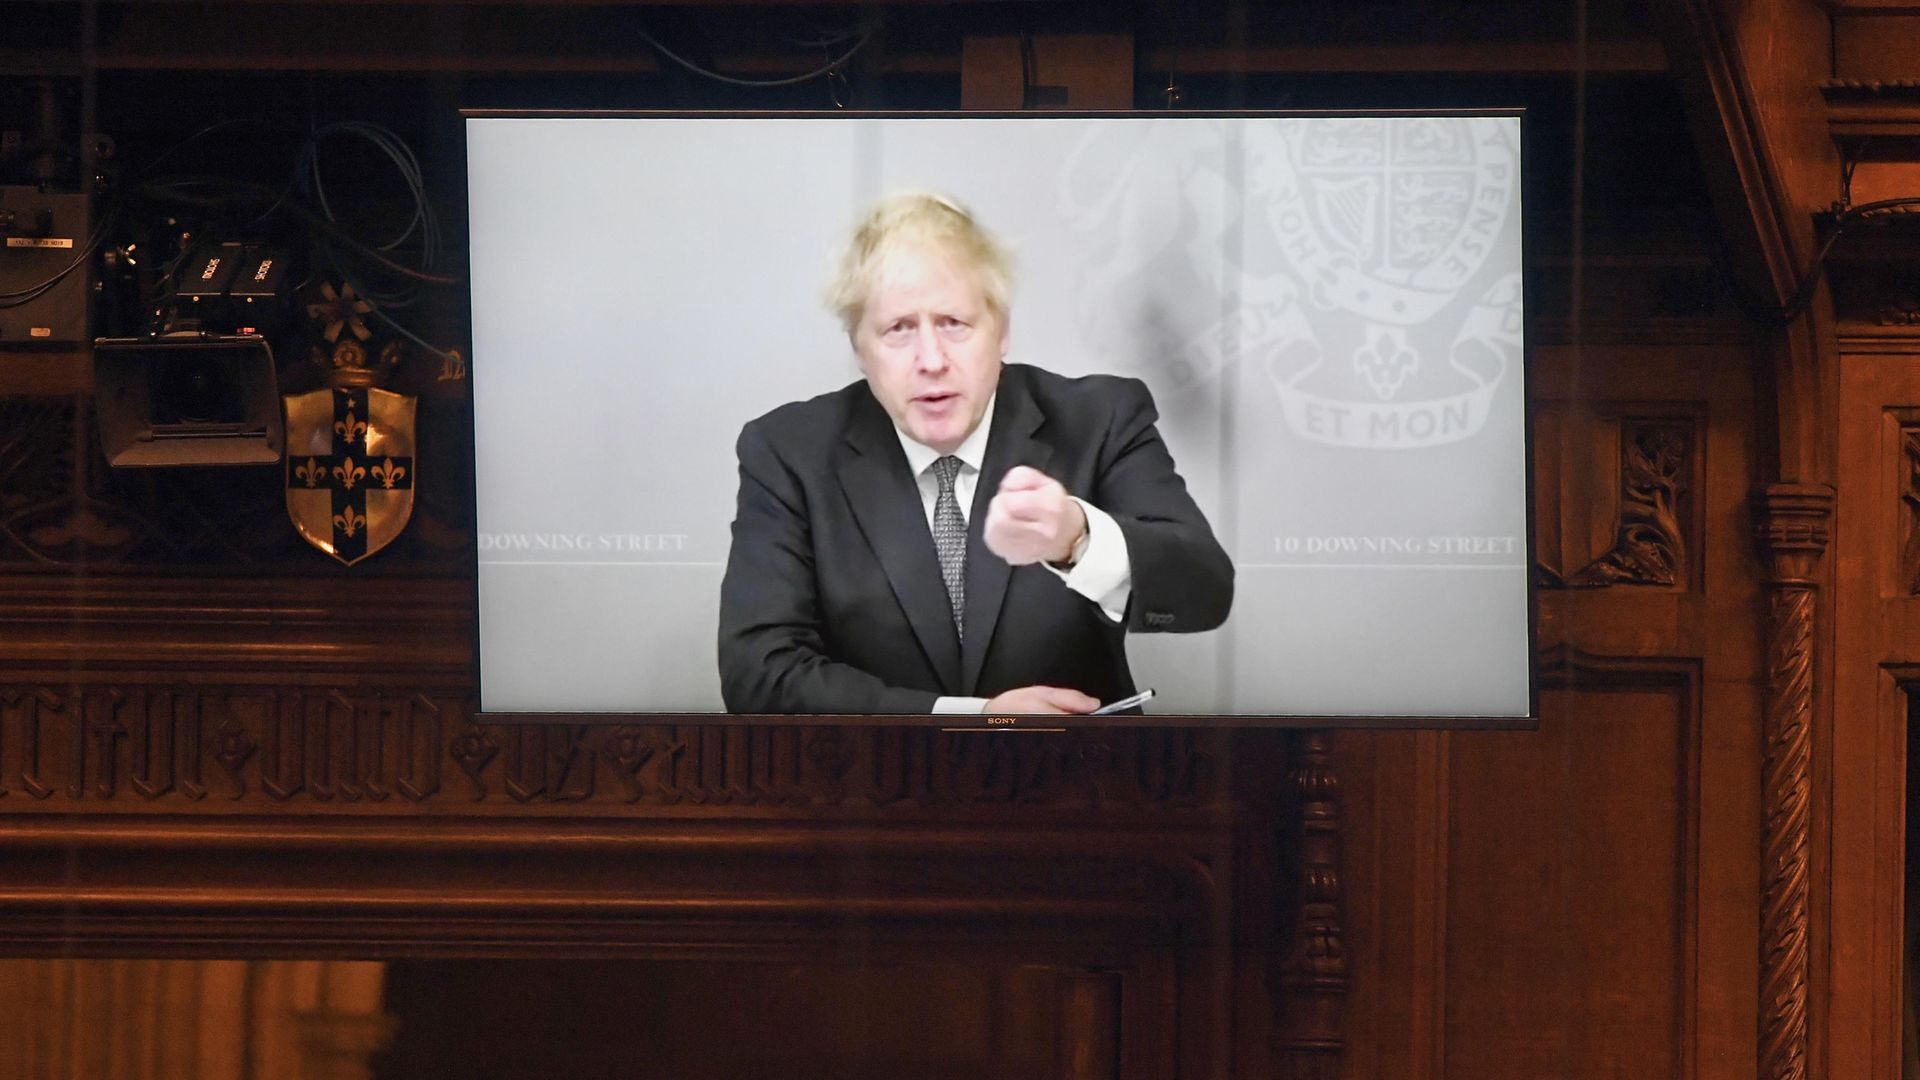 Prime Minister Boris Johnson appearing via video link from 10 Downing Street during Prime Minister's Questions in the House of Commons - Credit: PA